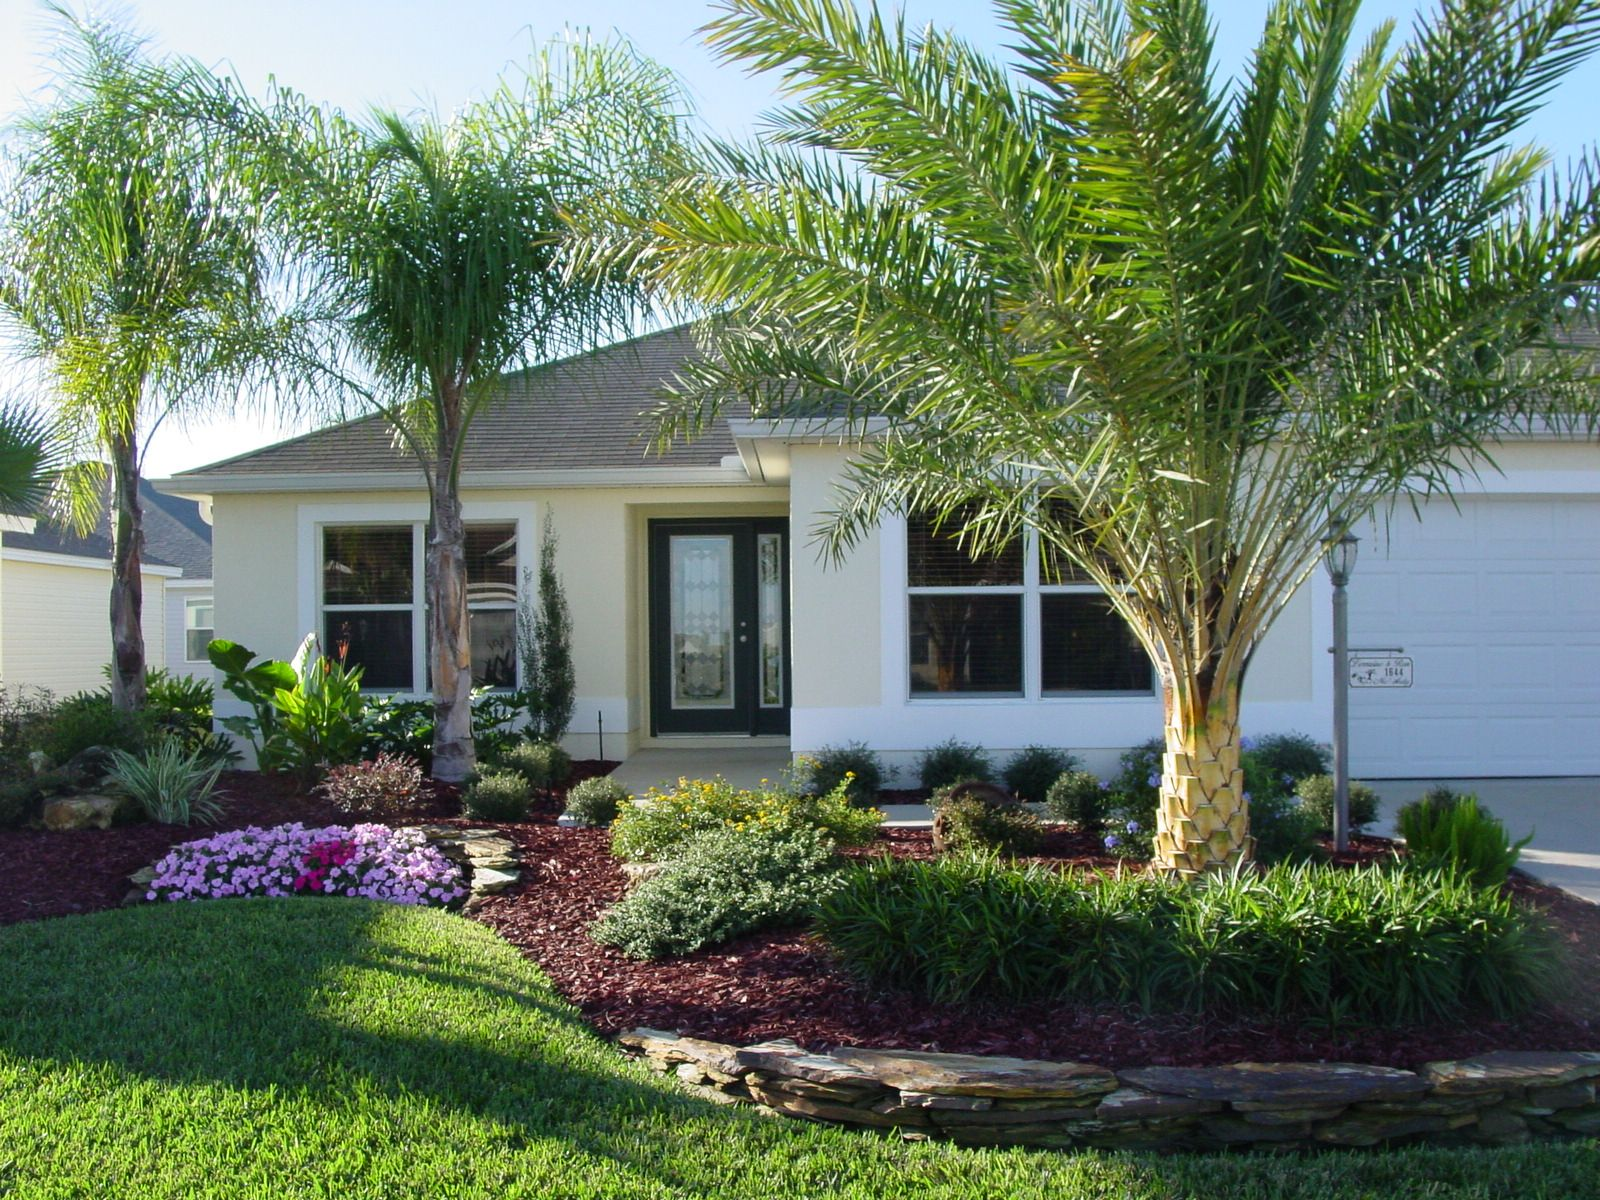 florida landscaping ideas rons landscaping inc about us - Florida Landscape Design Ideas